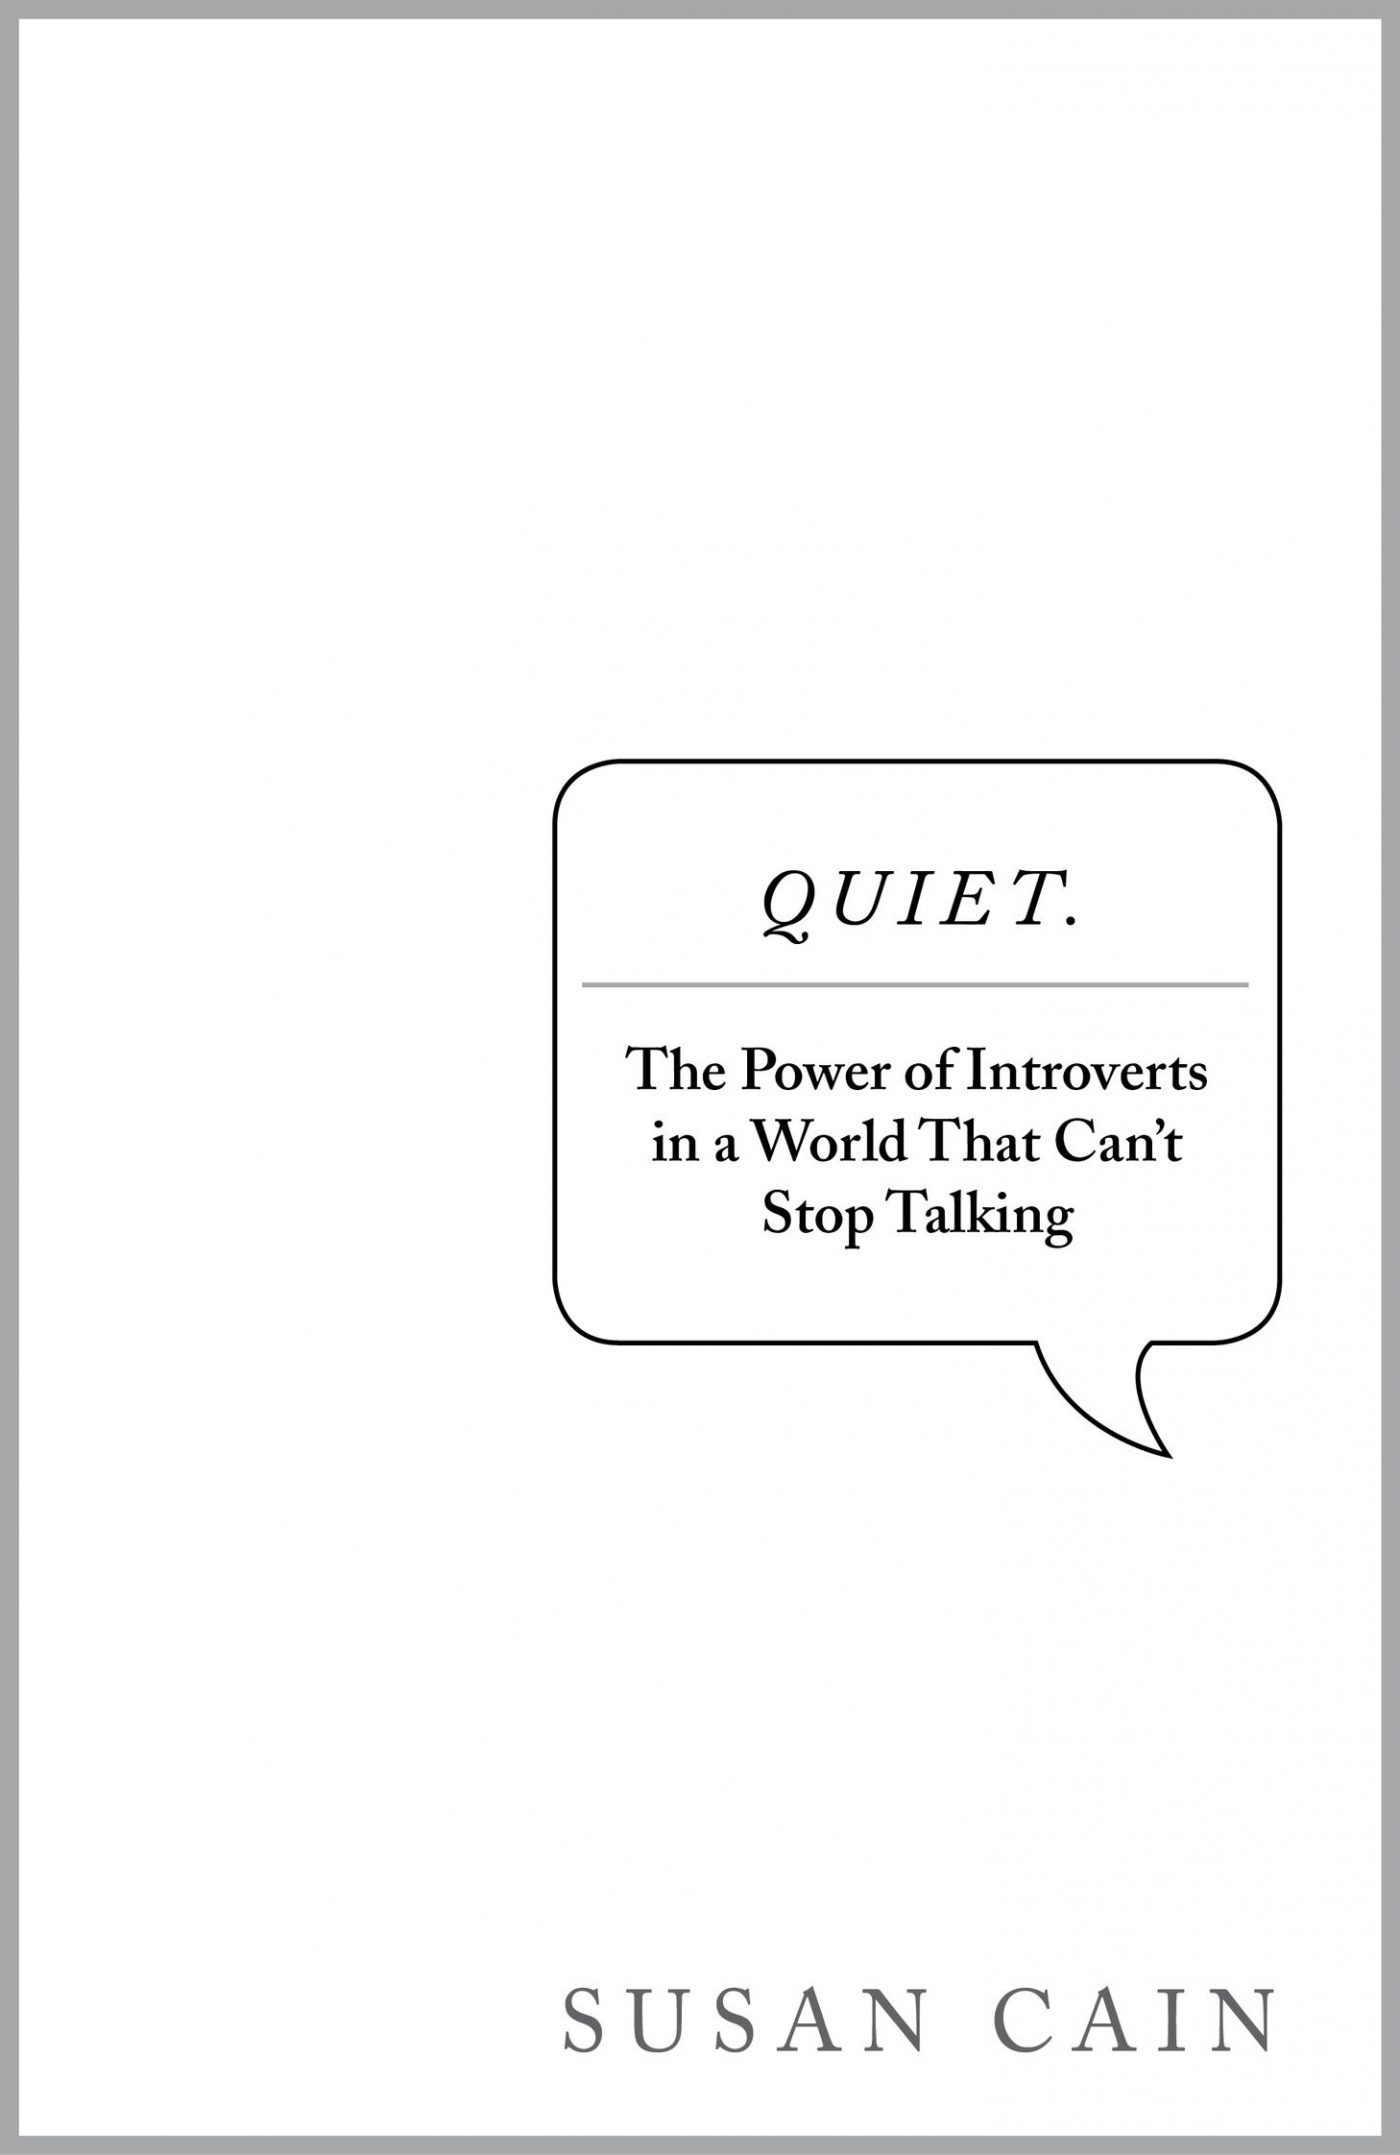 The lure of introversion: QUIET by Susan Cain